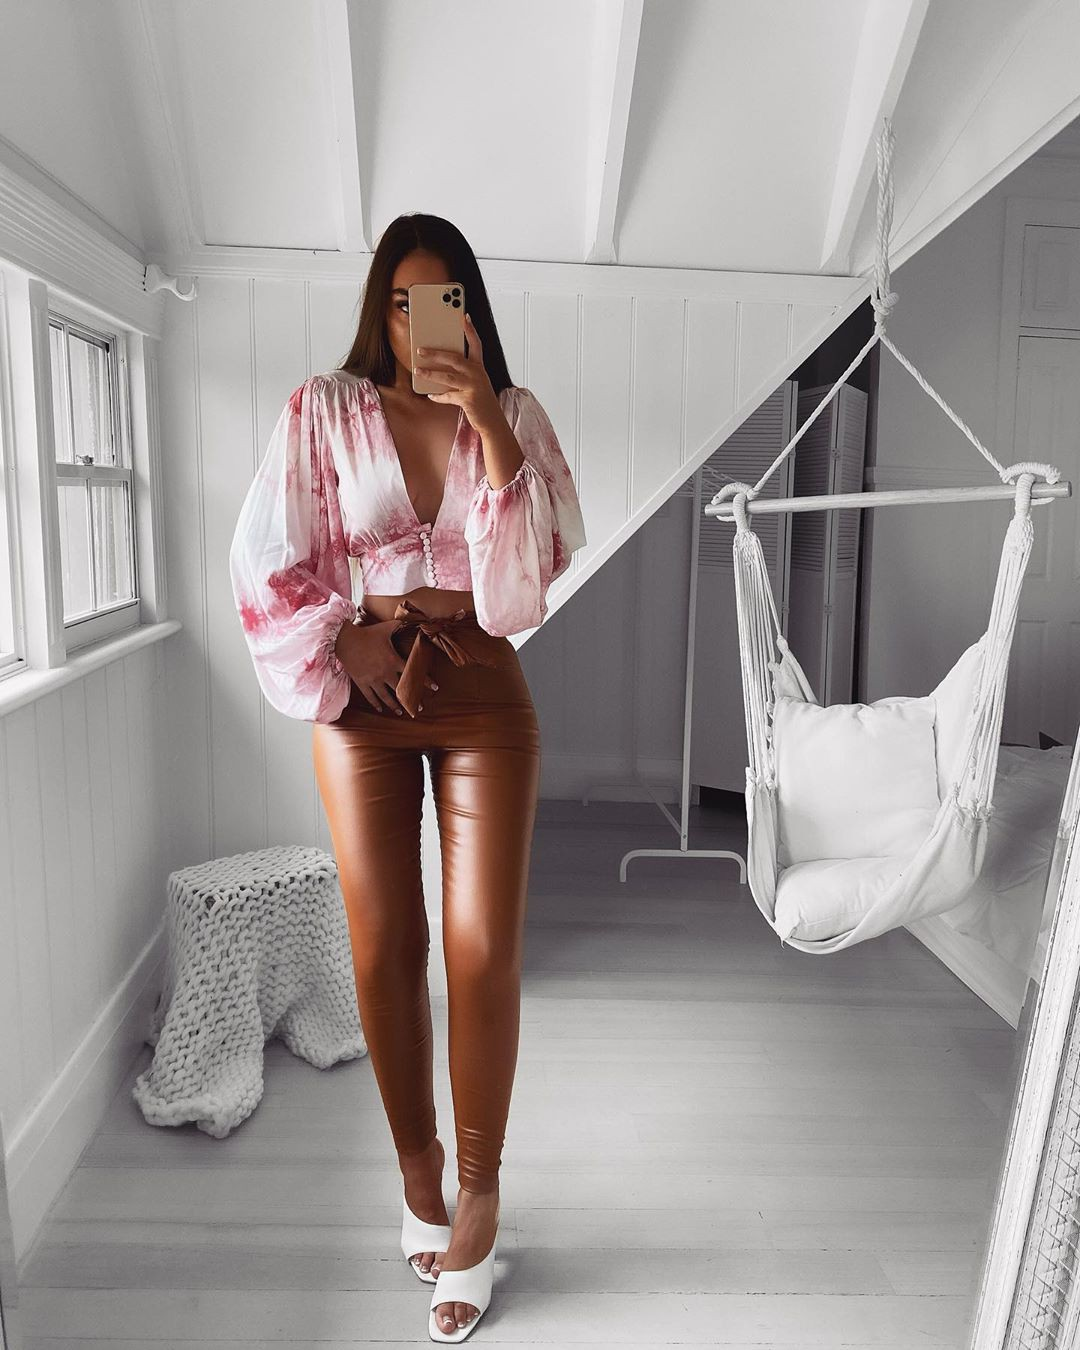 White and pink jeans, best photoshoot ideas, smooth thigh pics